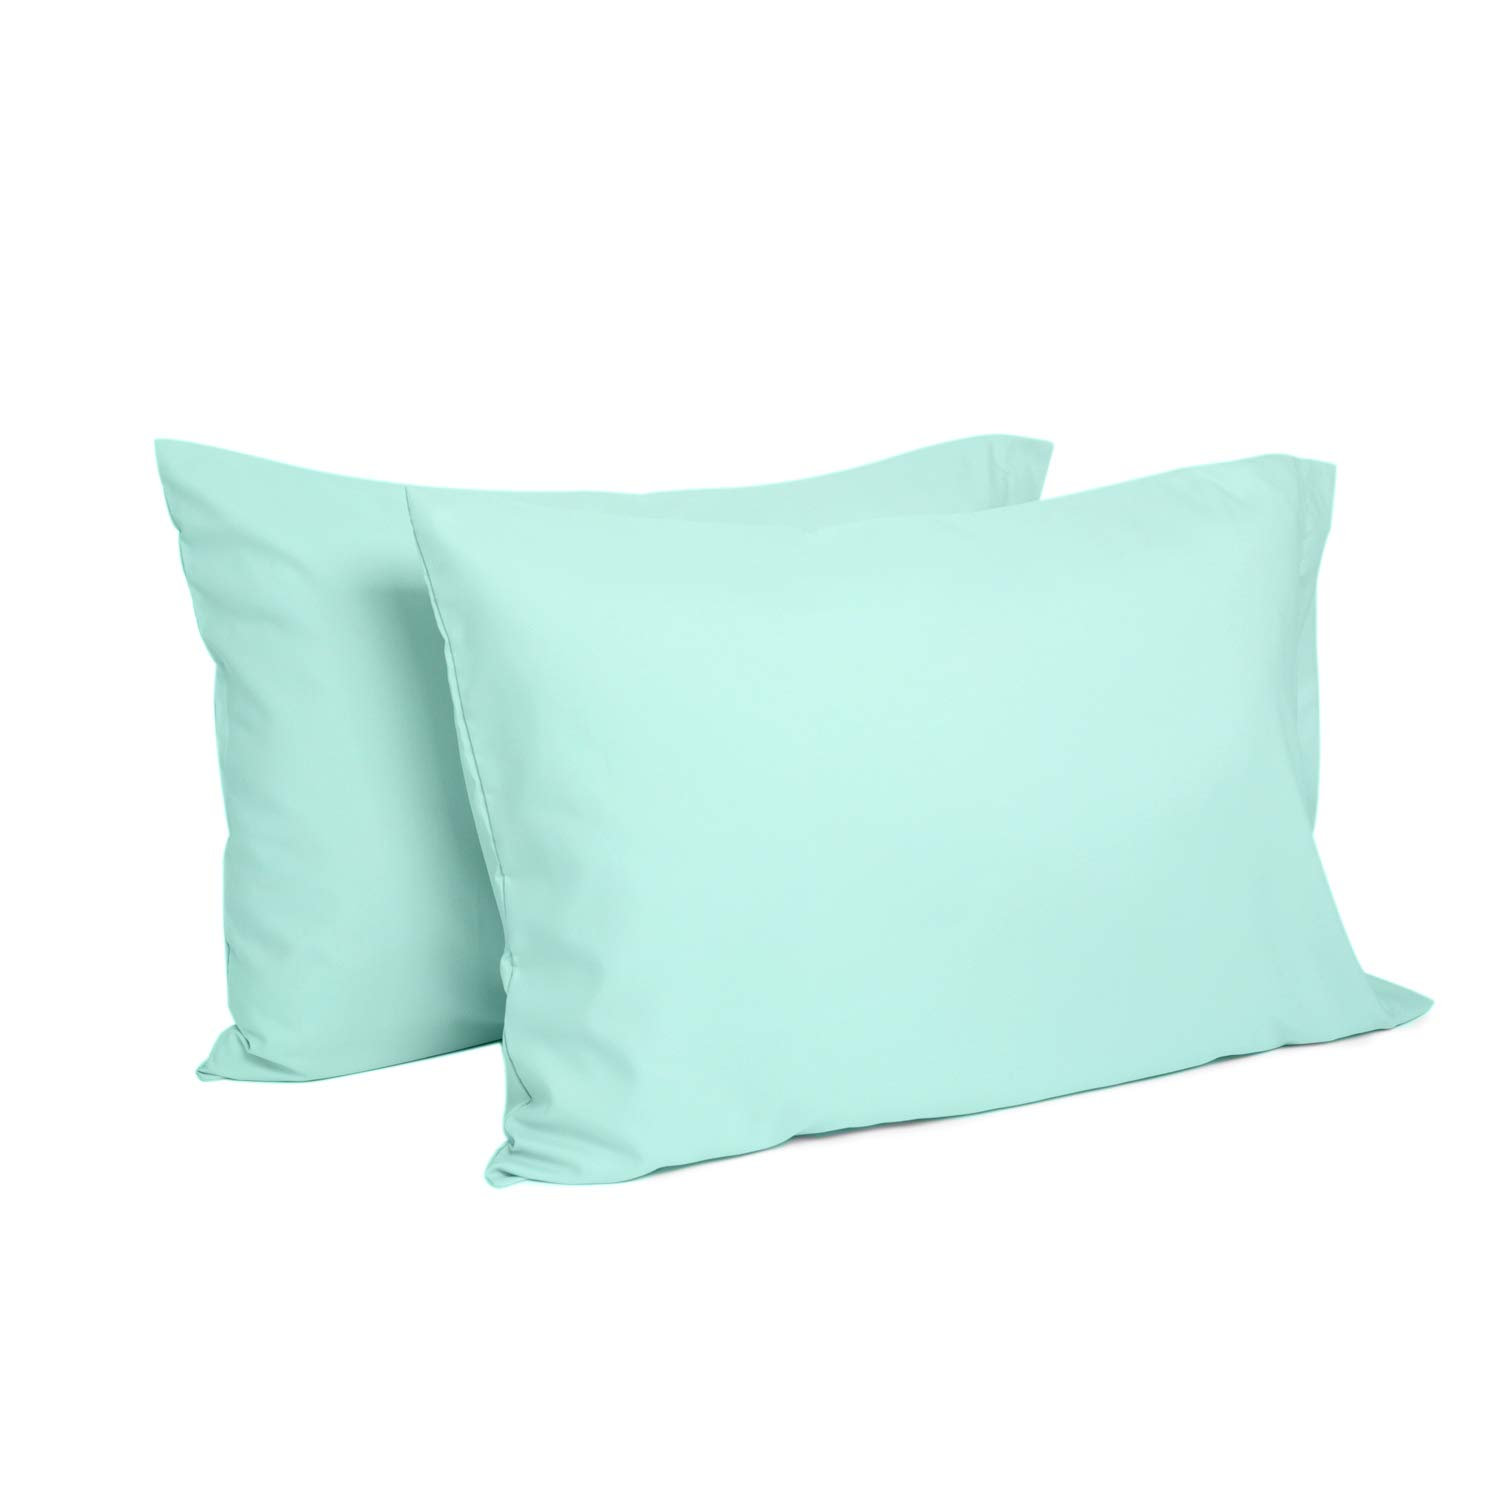 TILLYOU Toddler Travel Pillowcases Set of 2, 14x20- Fits Pillows Sized 12x16, 13x18 or 14x19, 100% Silky Soft Microfiber, Envelope Closure Machine Washable Kids Pillow Cases, Aqua